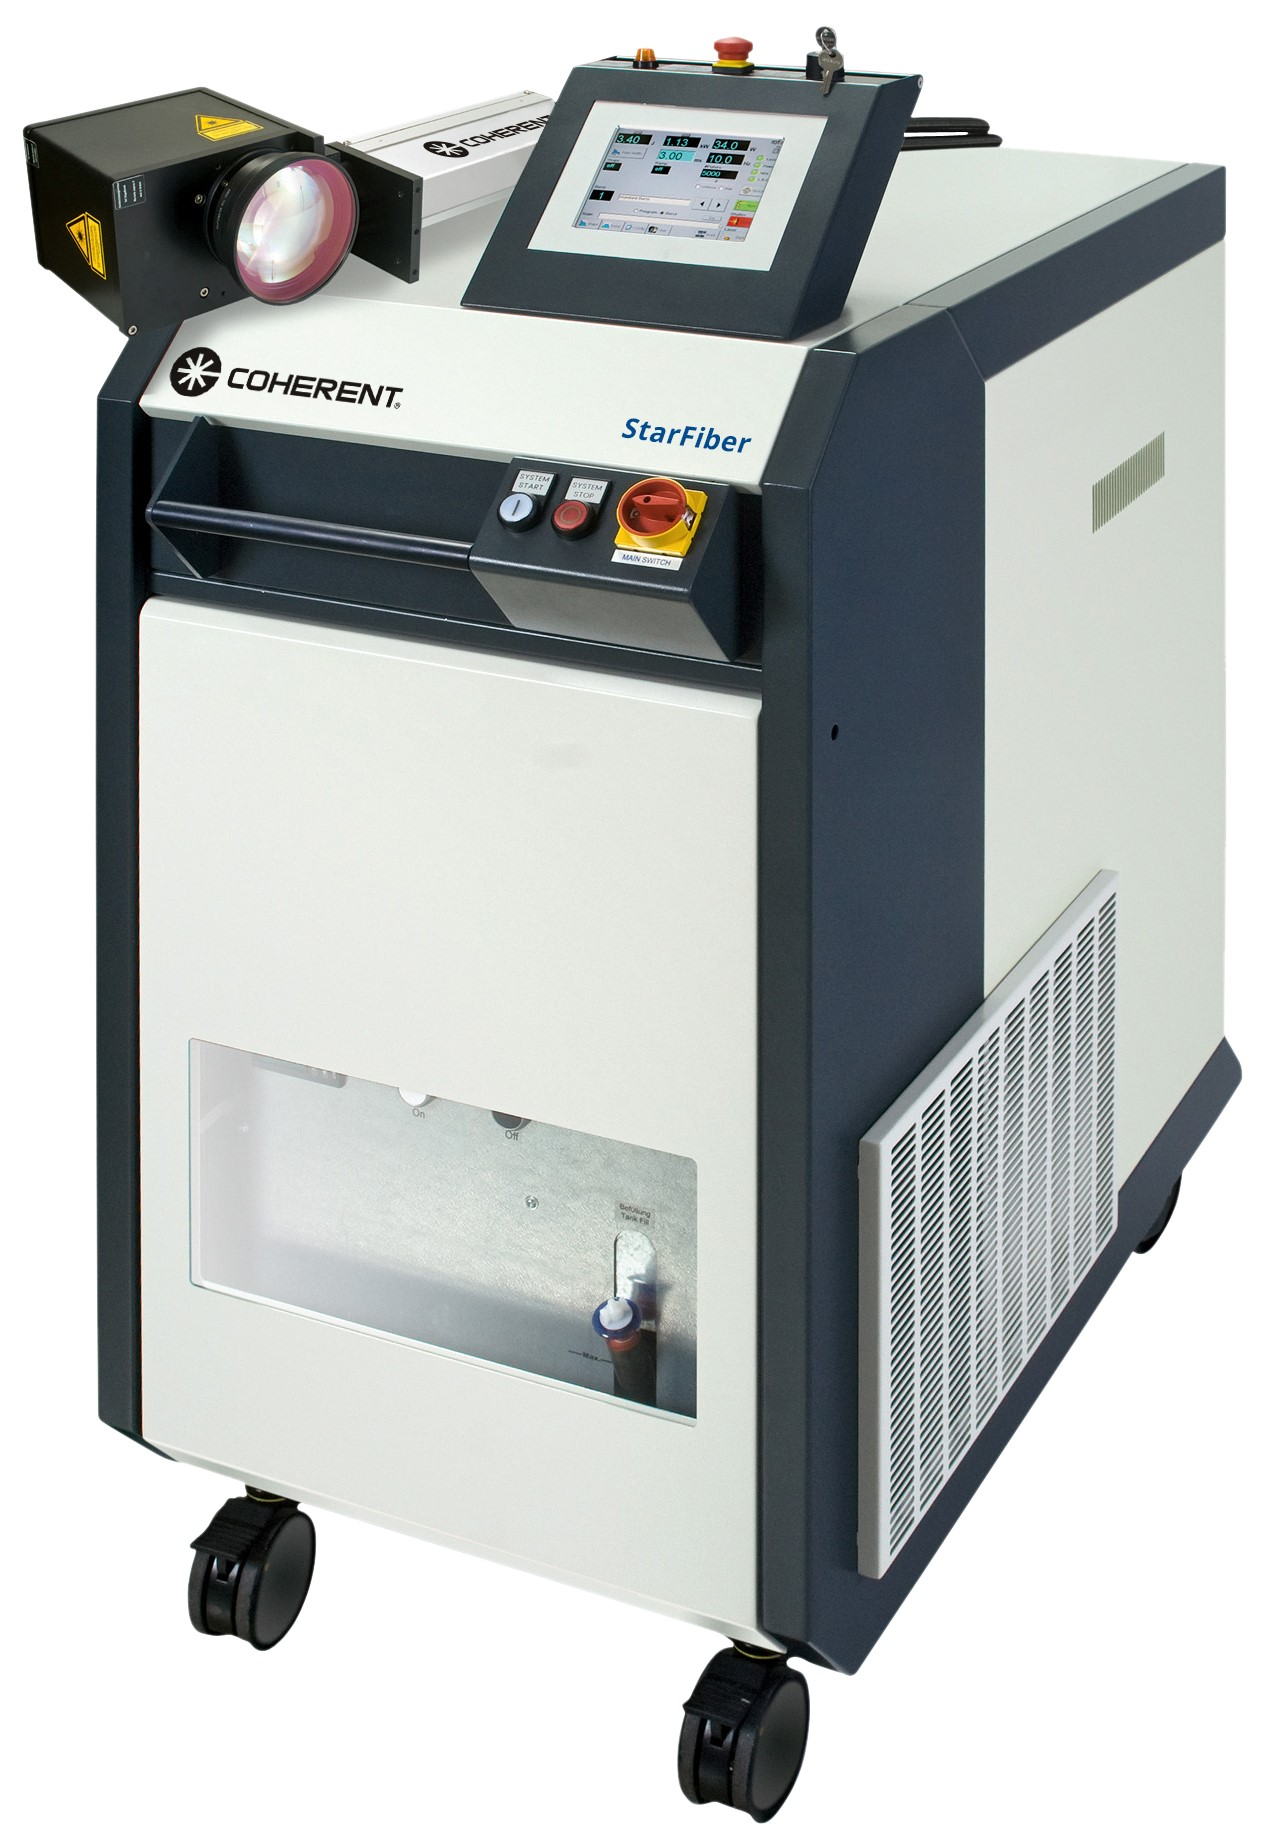 StarFiber 100-600 Fiber Laser for Fine Welding, Cutting, and Drilling